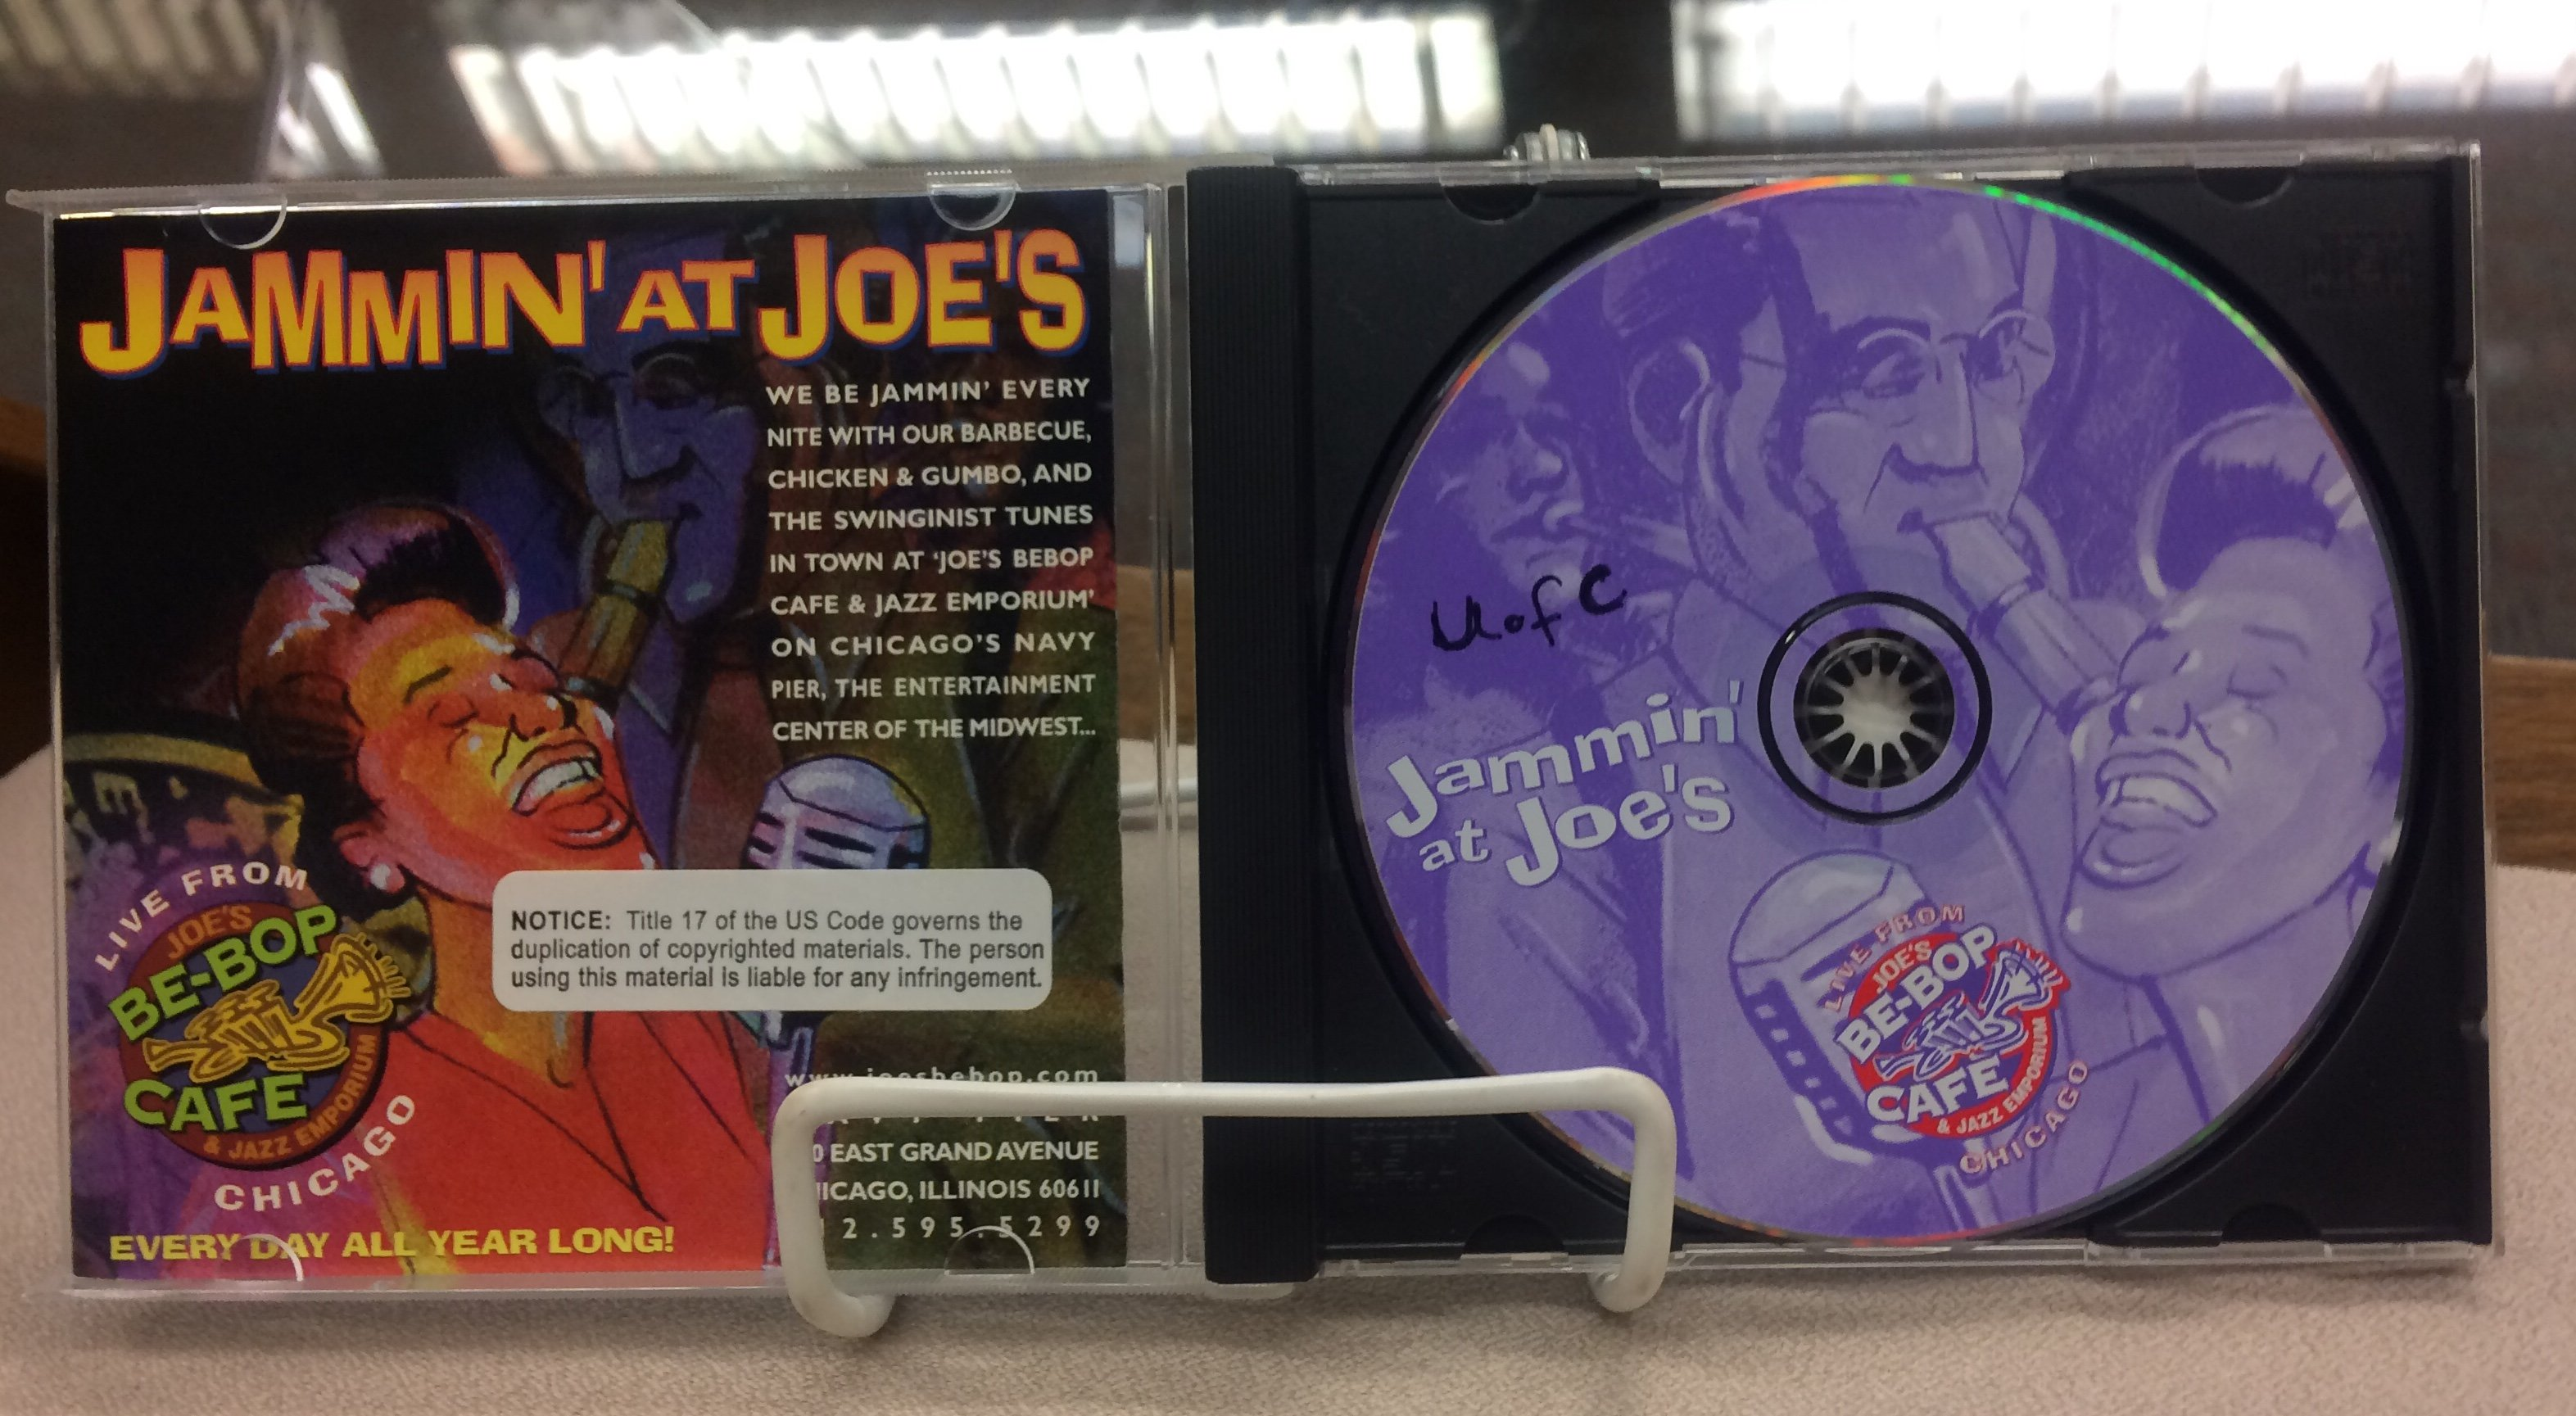 A CD case and a CD with illustrations of people playing instruments.